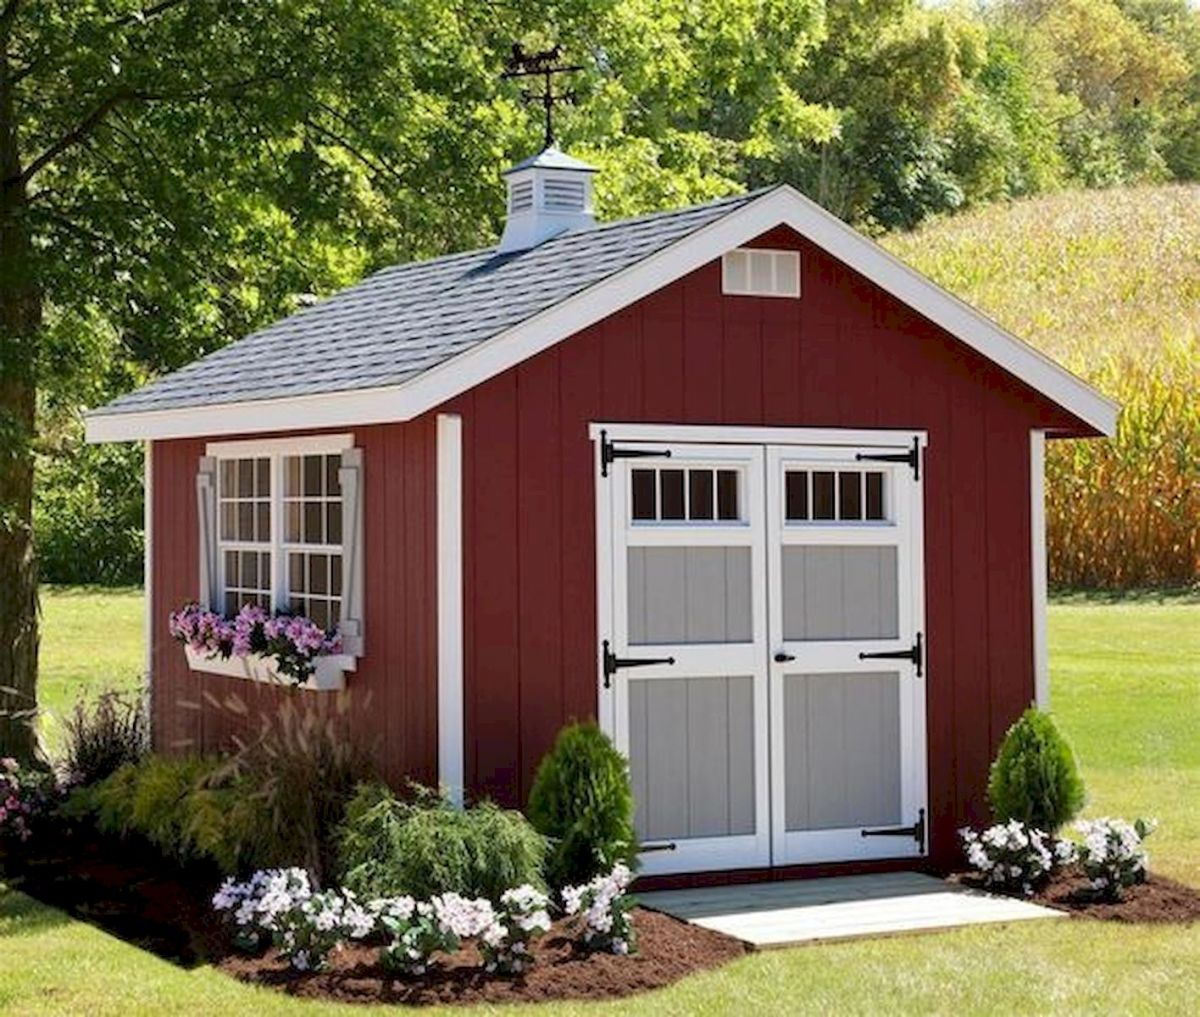 33 Best Tiny House Plans Small Cottages Design Ideas (8)